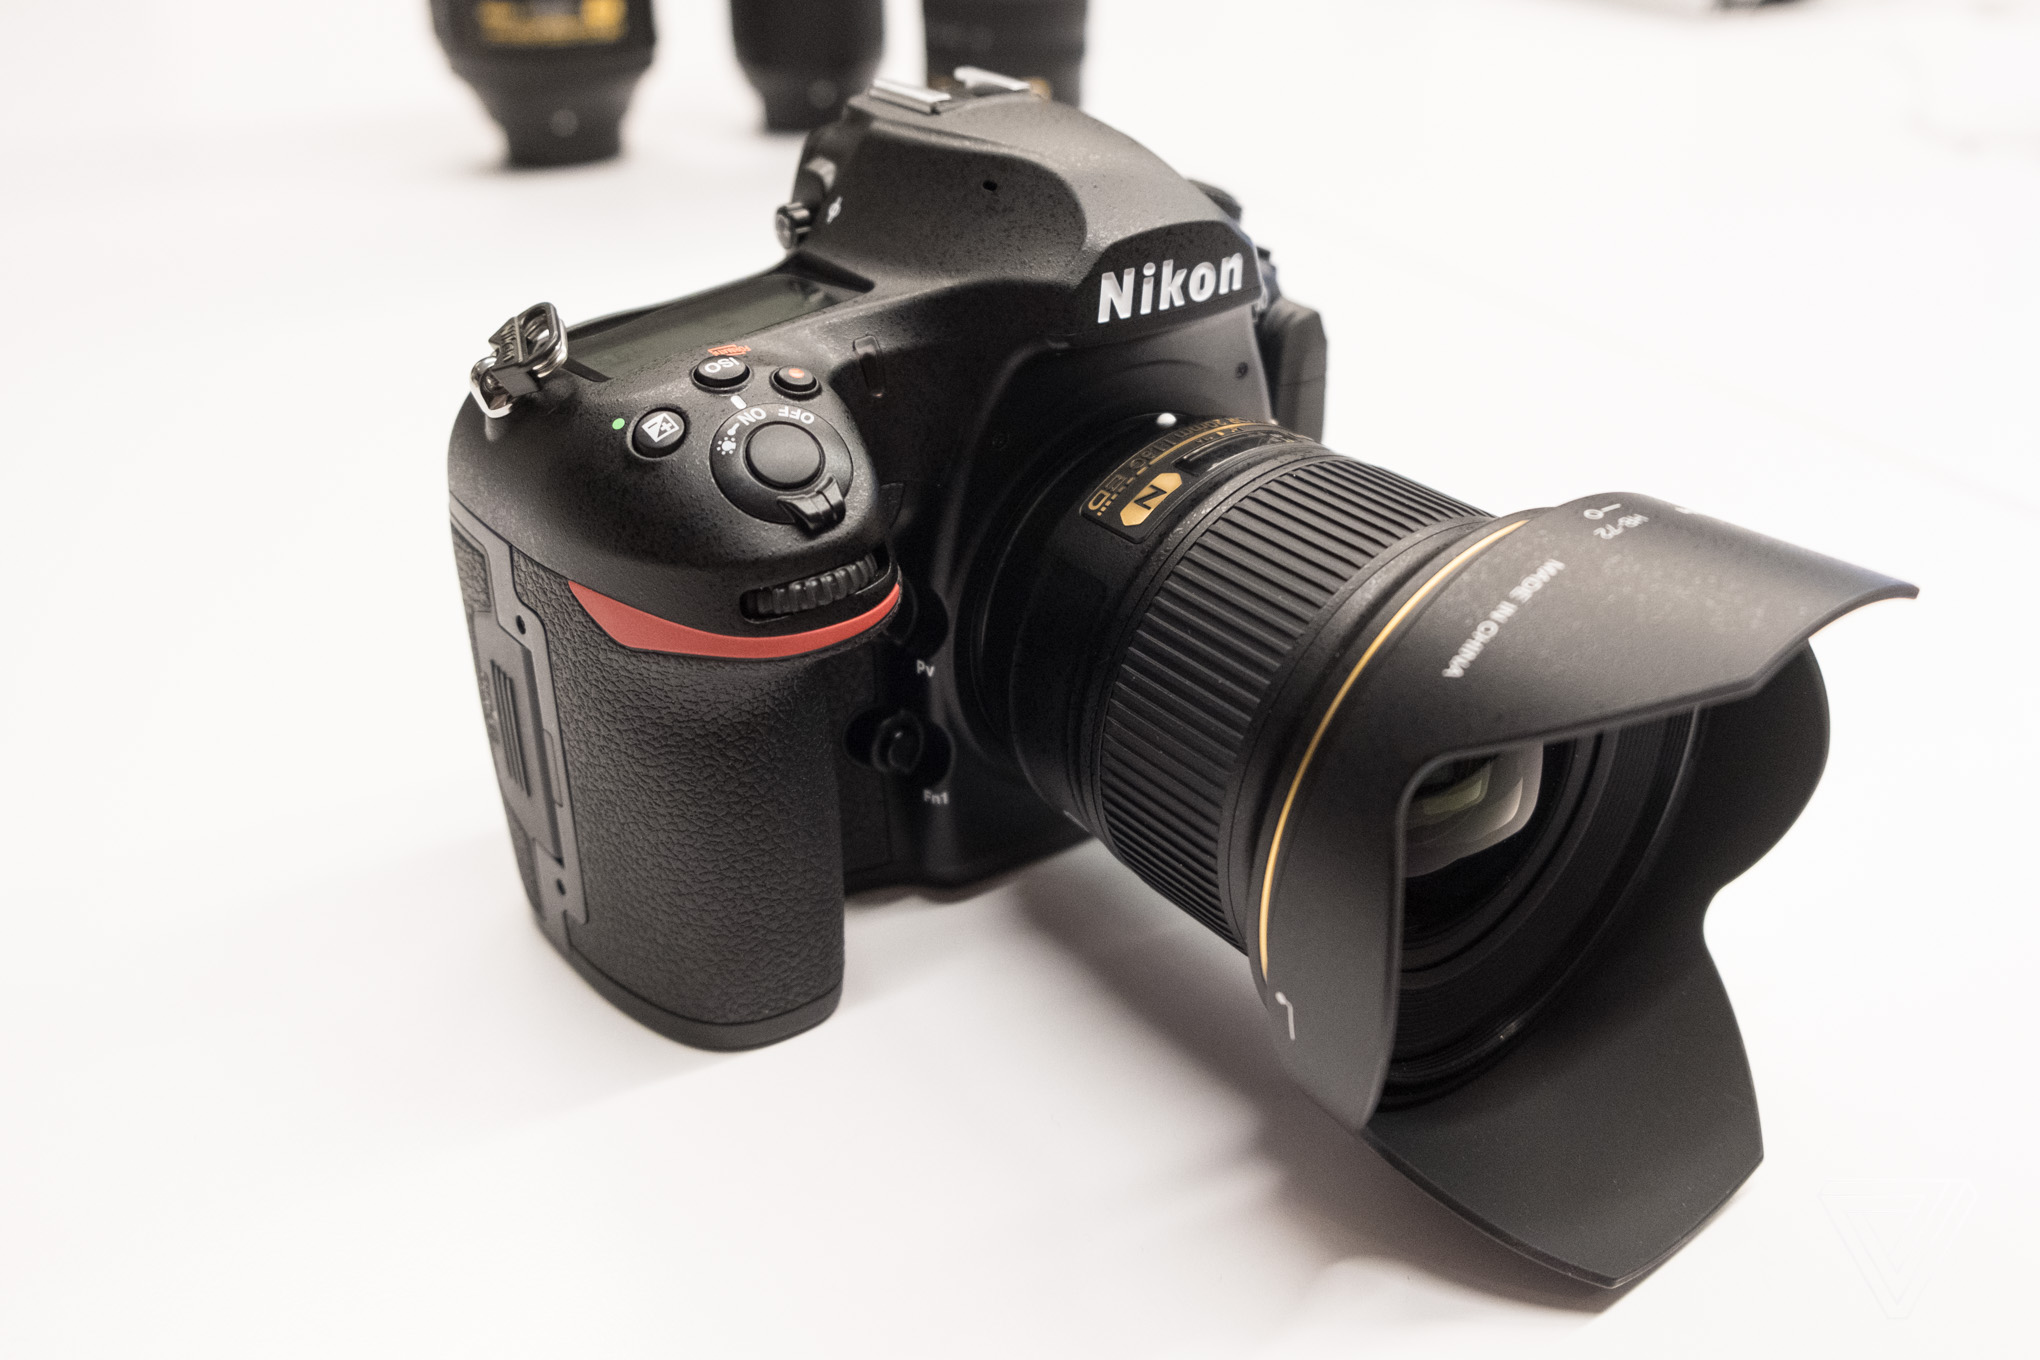 45.4-megapixel snaps with the Nikon D850